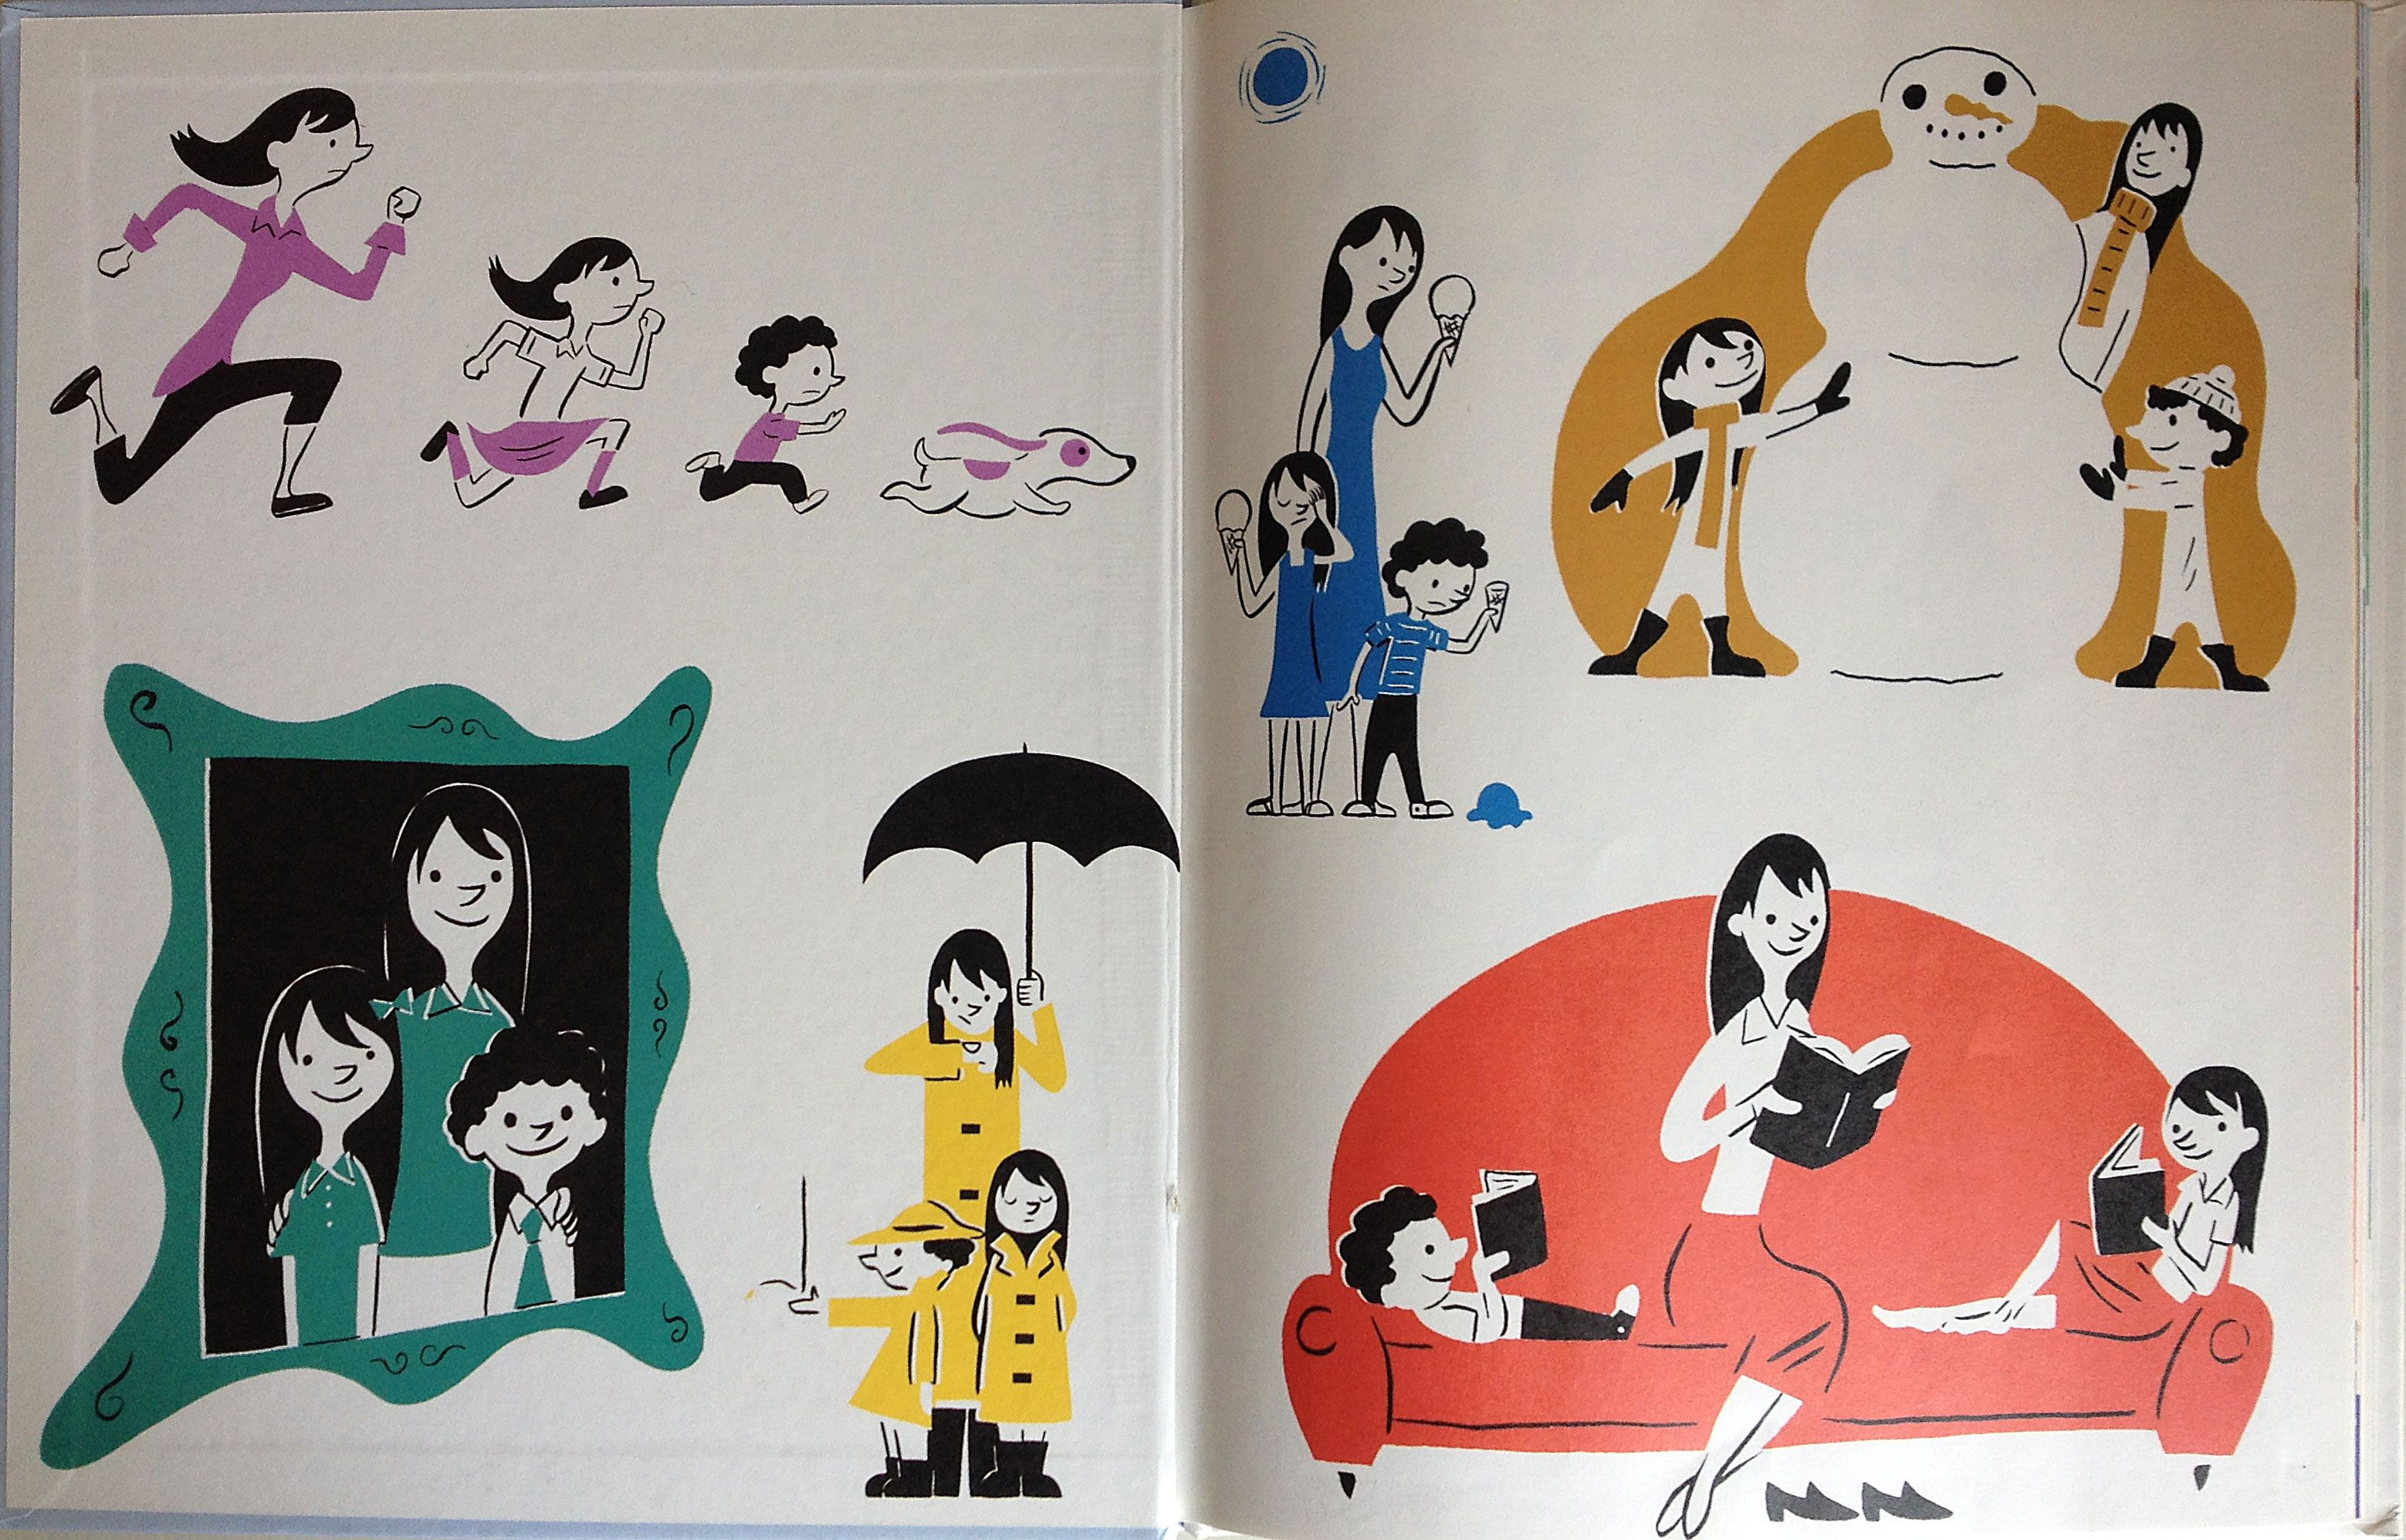 Endpapers From Kate And Nate Are Running Late Egan Illustrated By